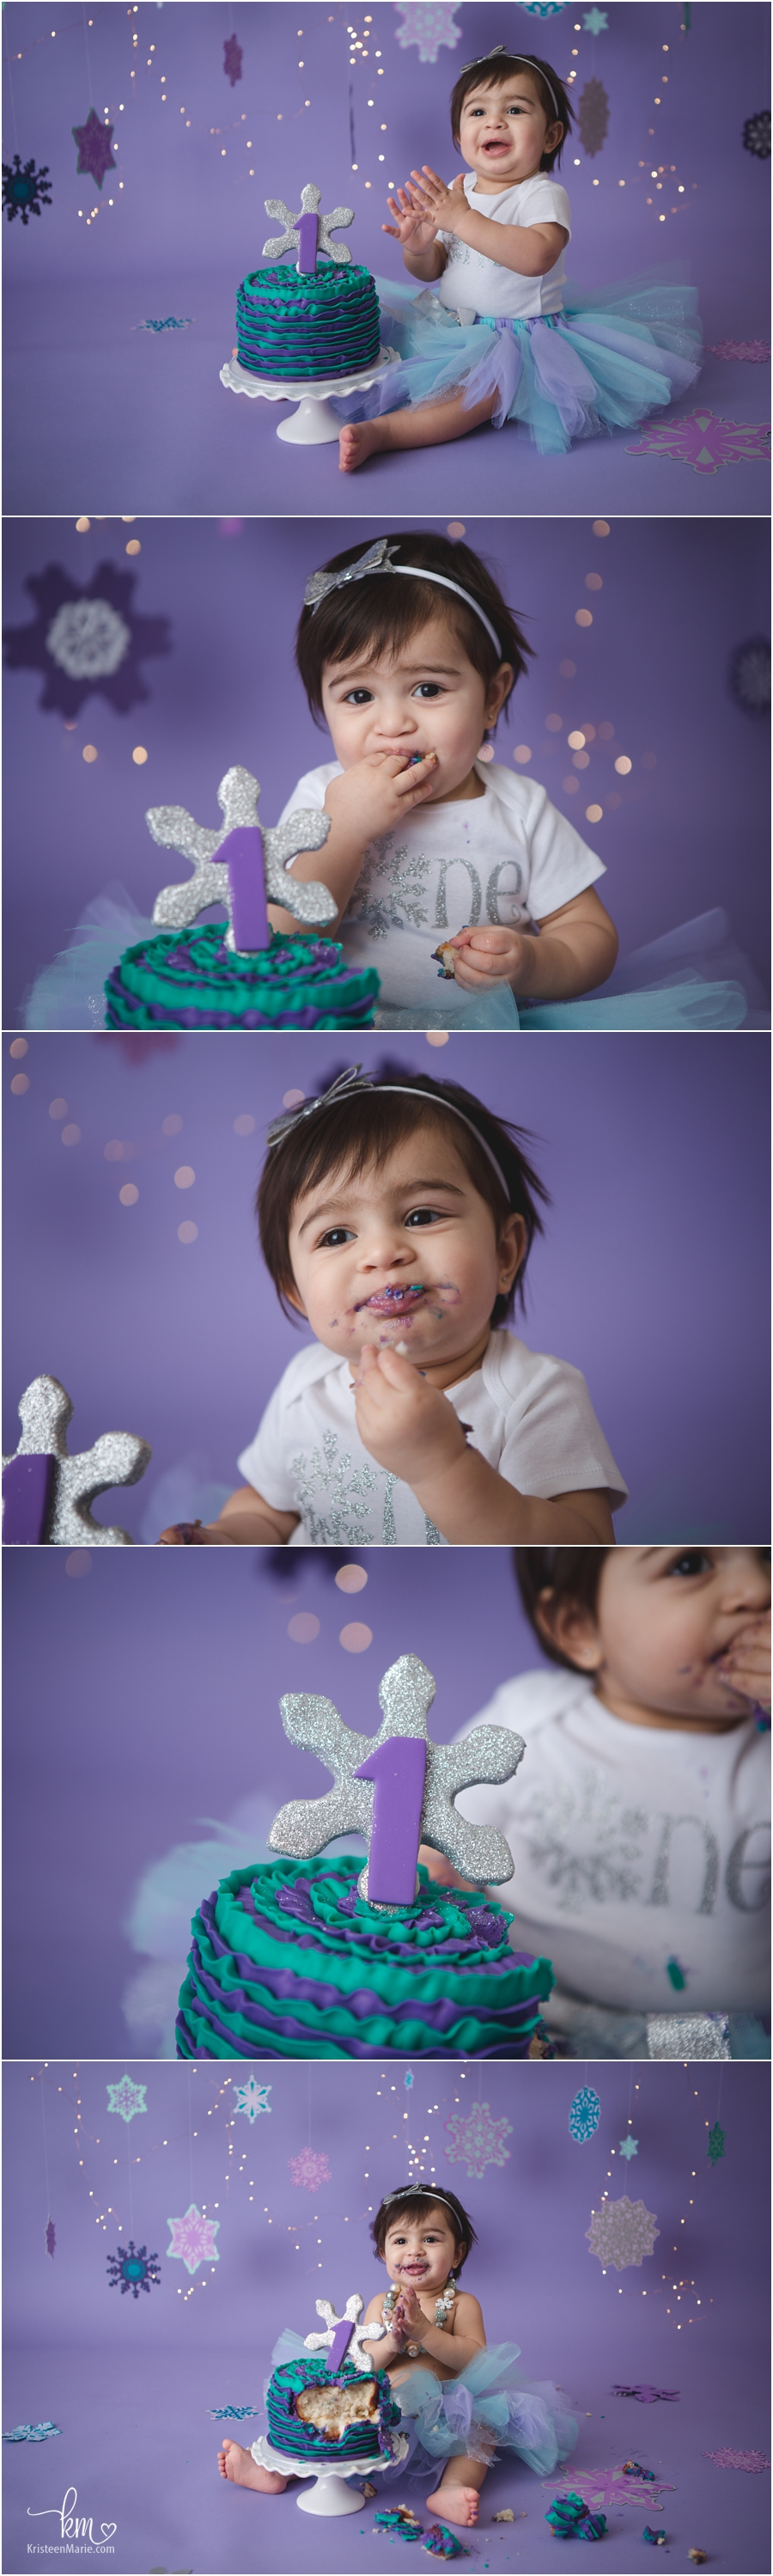 teal and purple winter ONEderland cake smash session